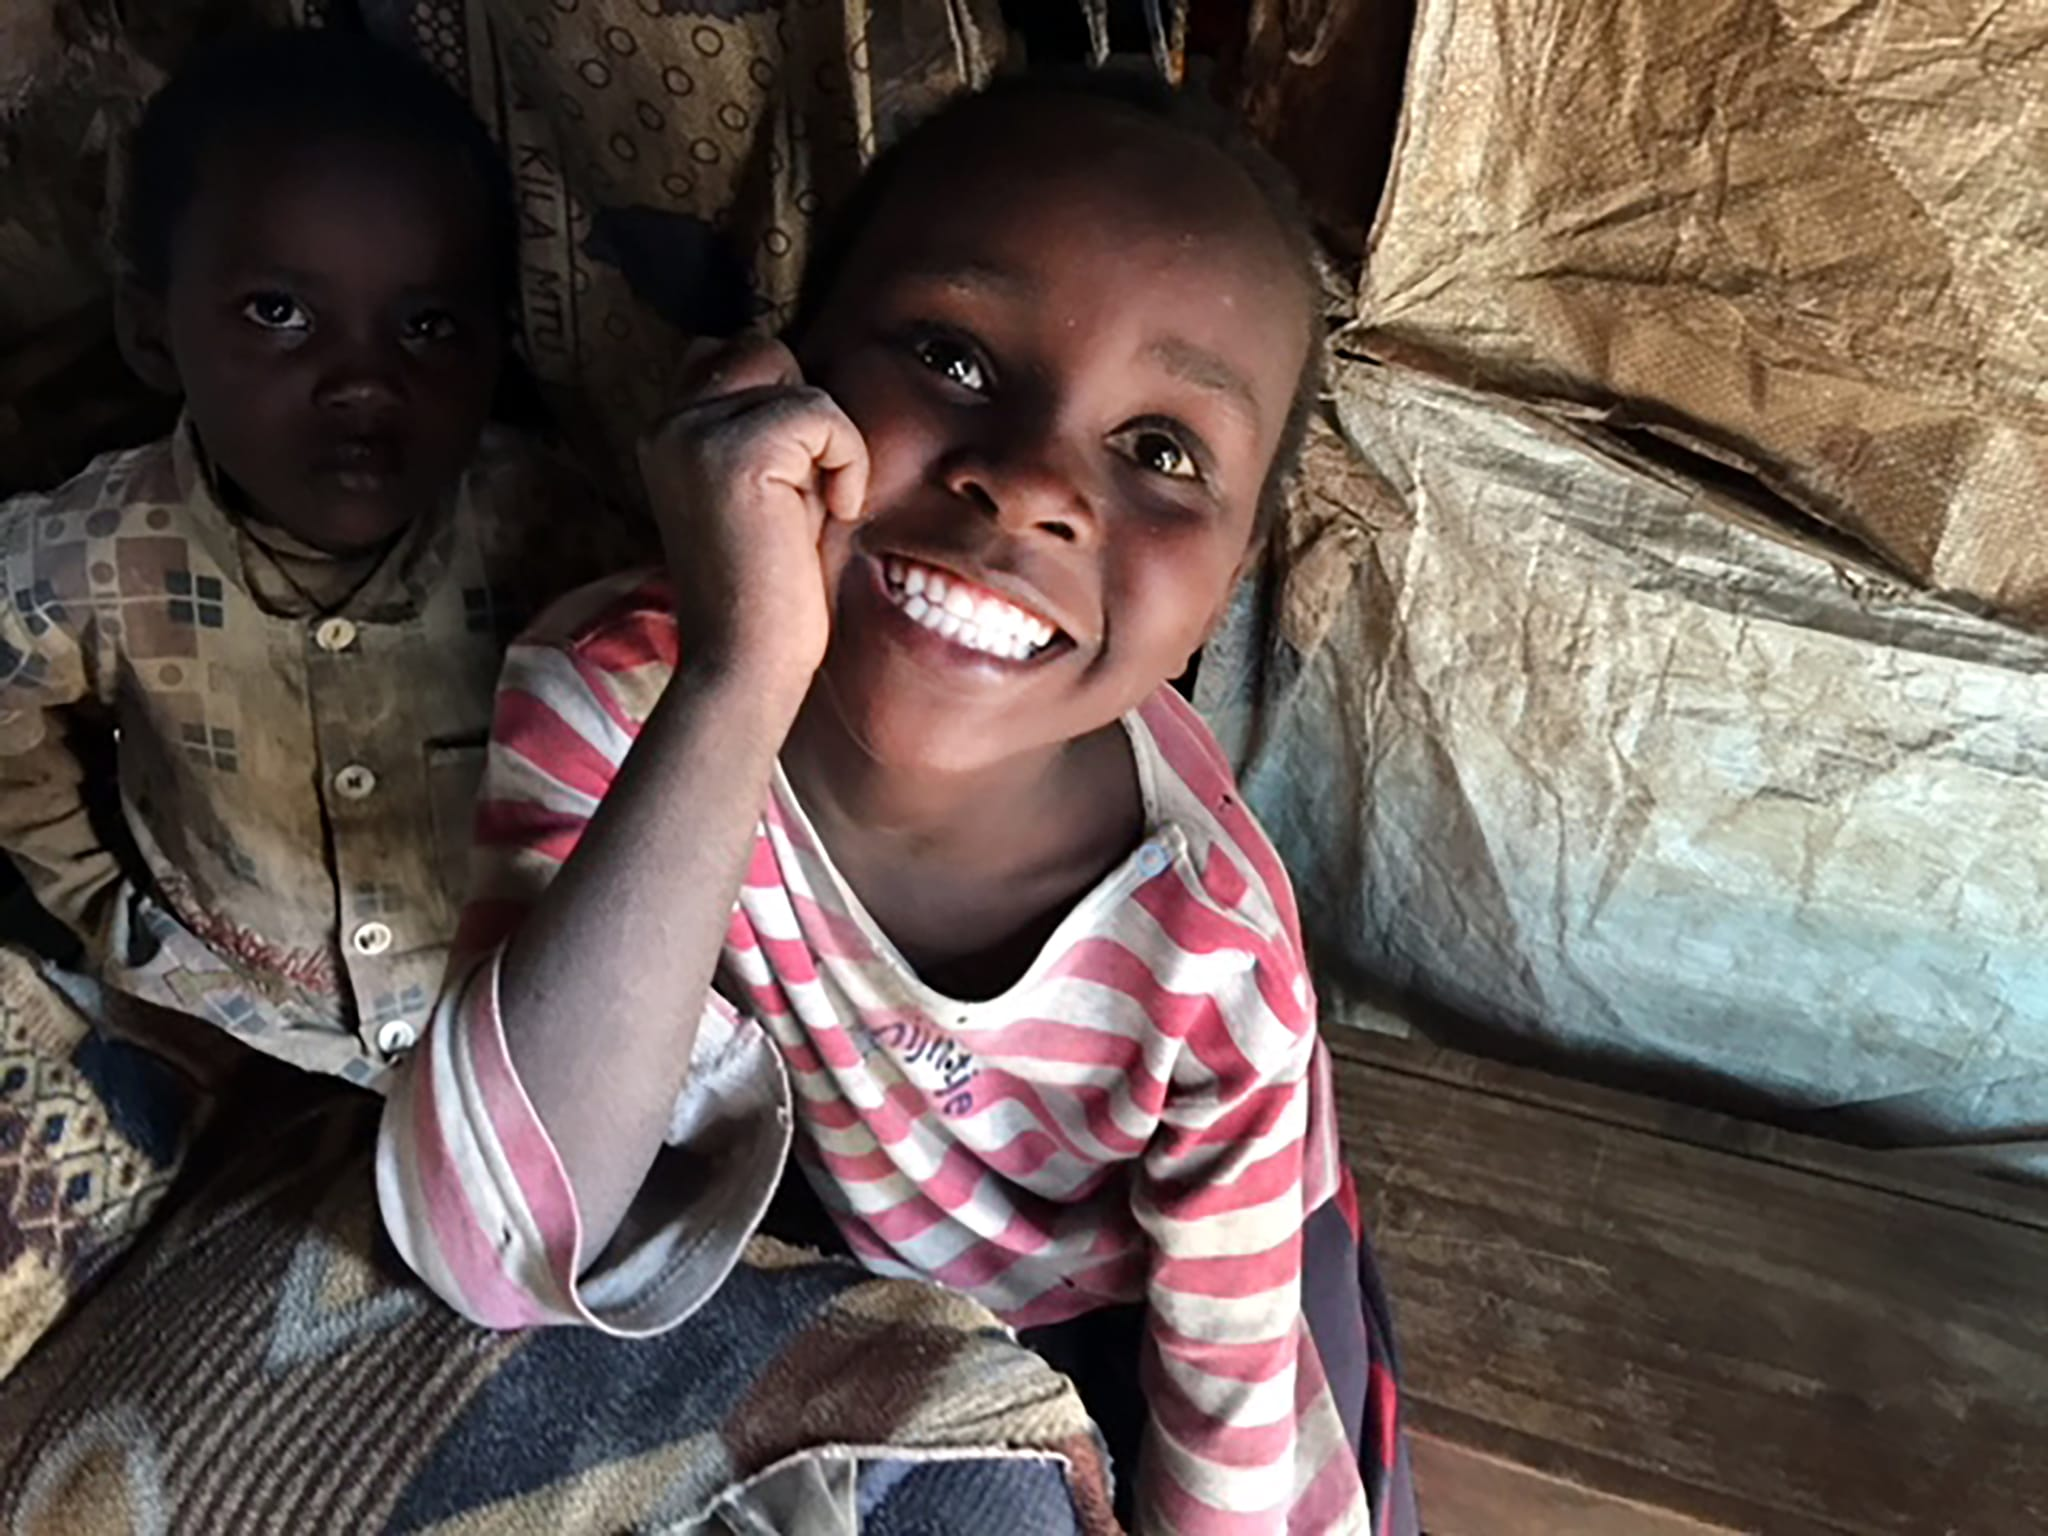 This is Sabina Nyaguthi.  She dreams of going to school like the other children, but fees often prevent her from attending class.  Your sponsorship can change the world for this little girl !